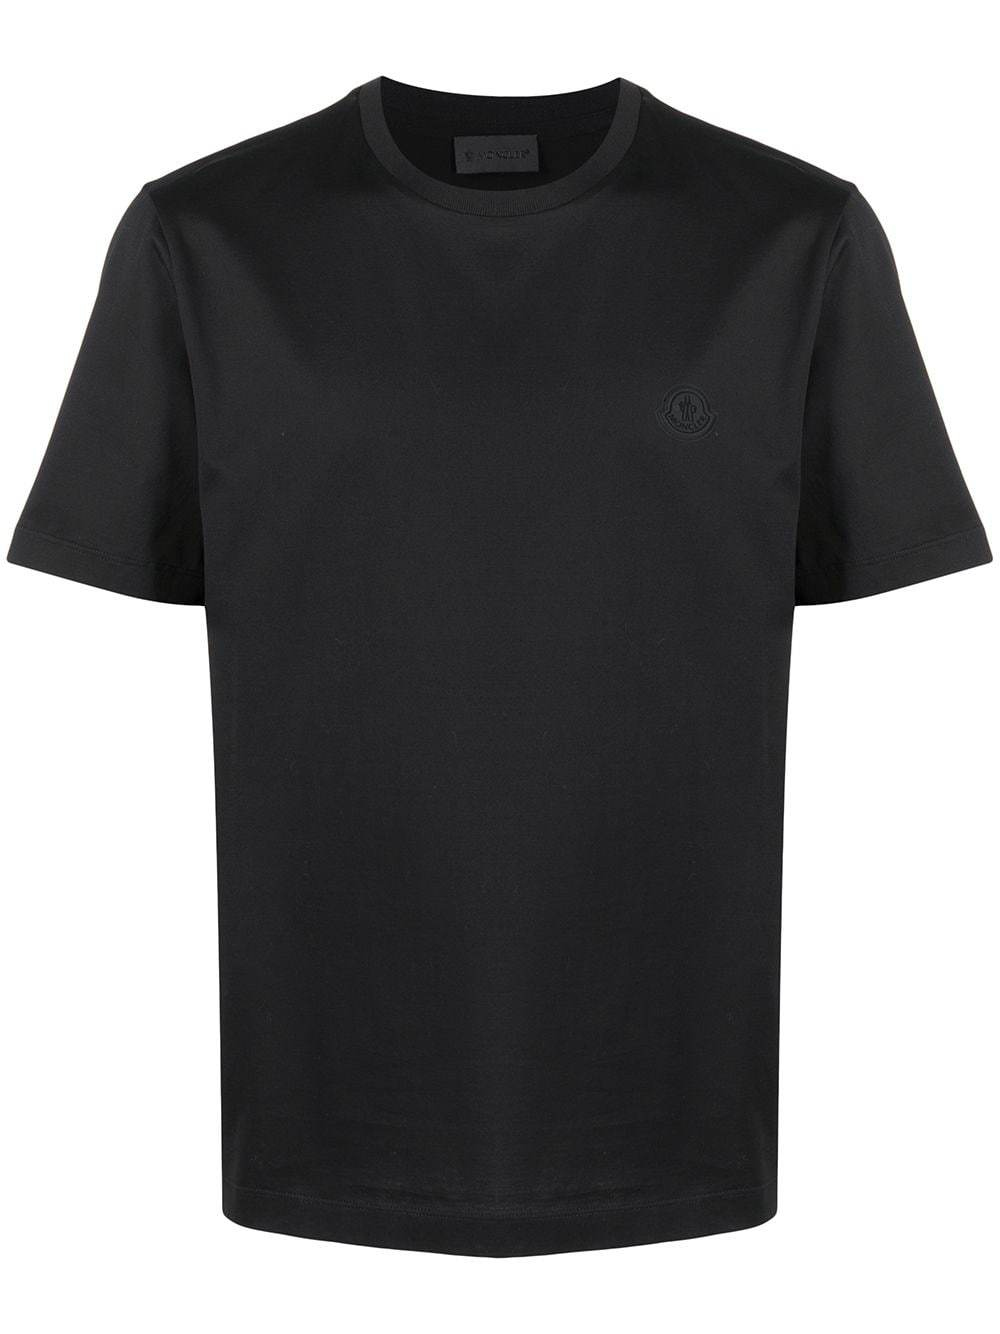 MONCLER Rear Logo T-Shirt Black